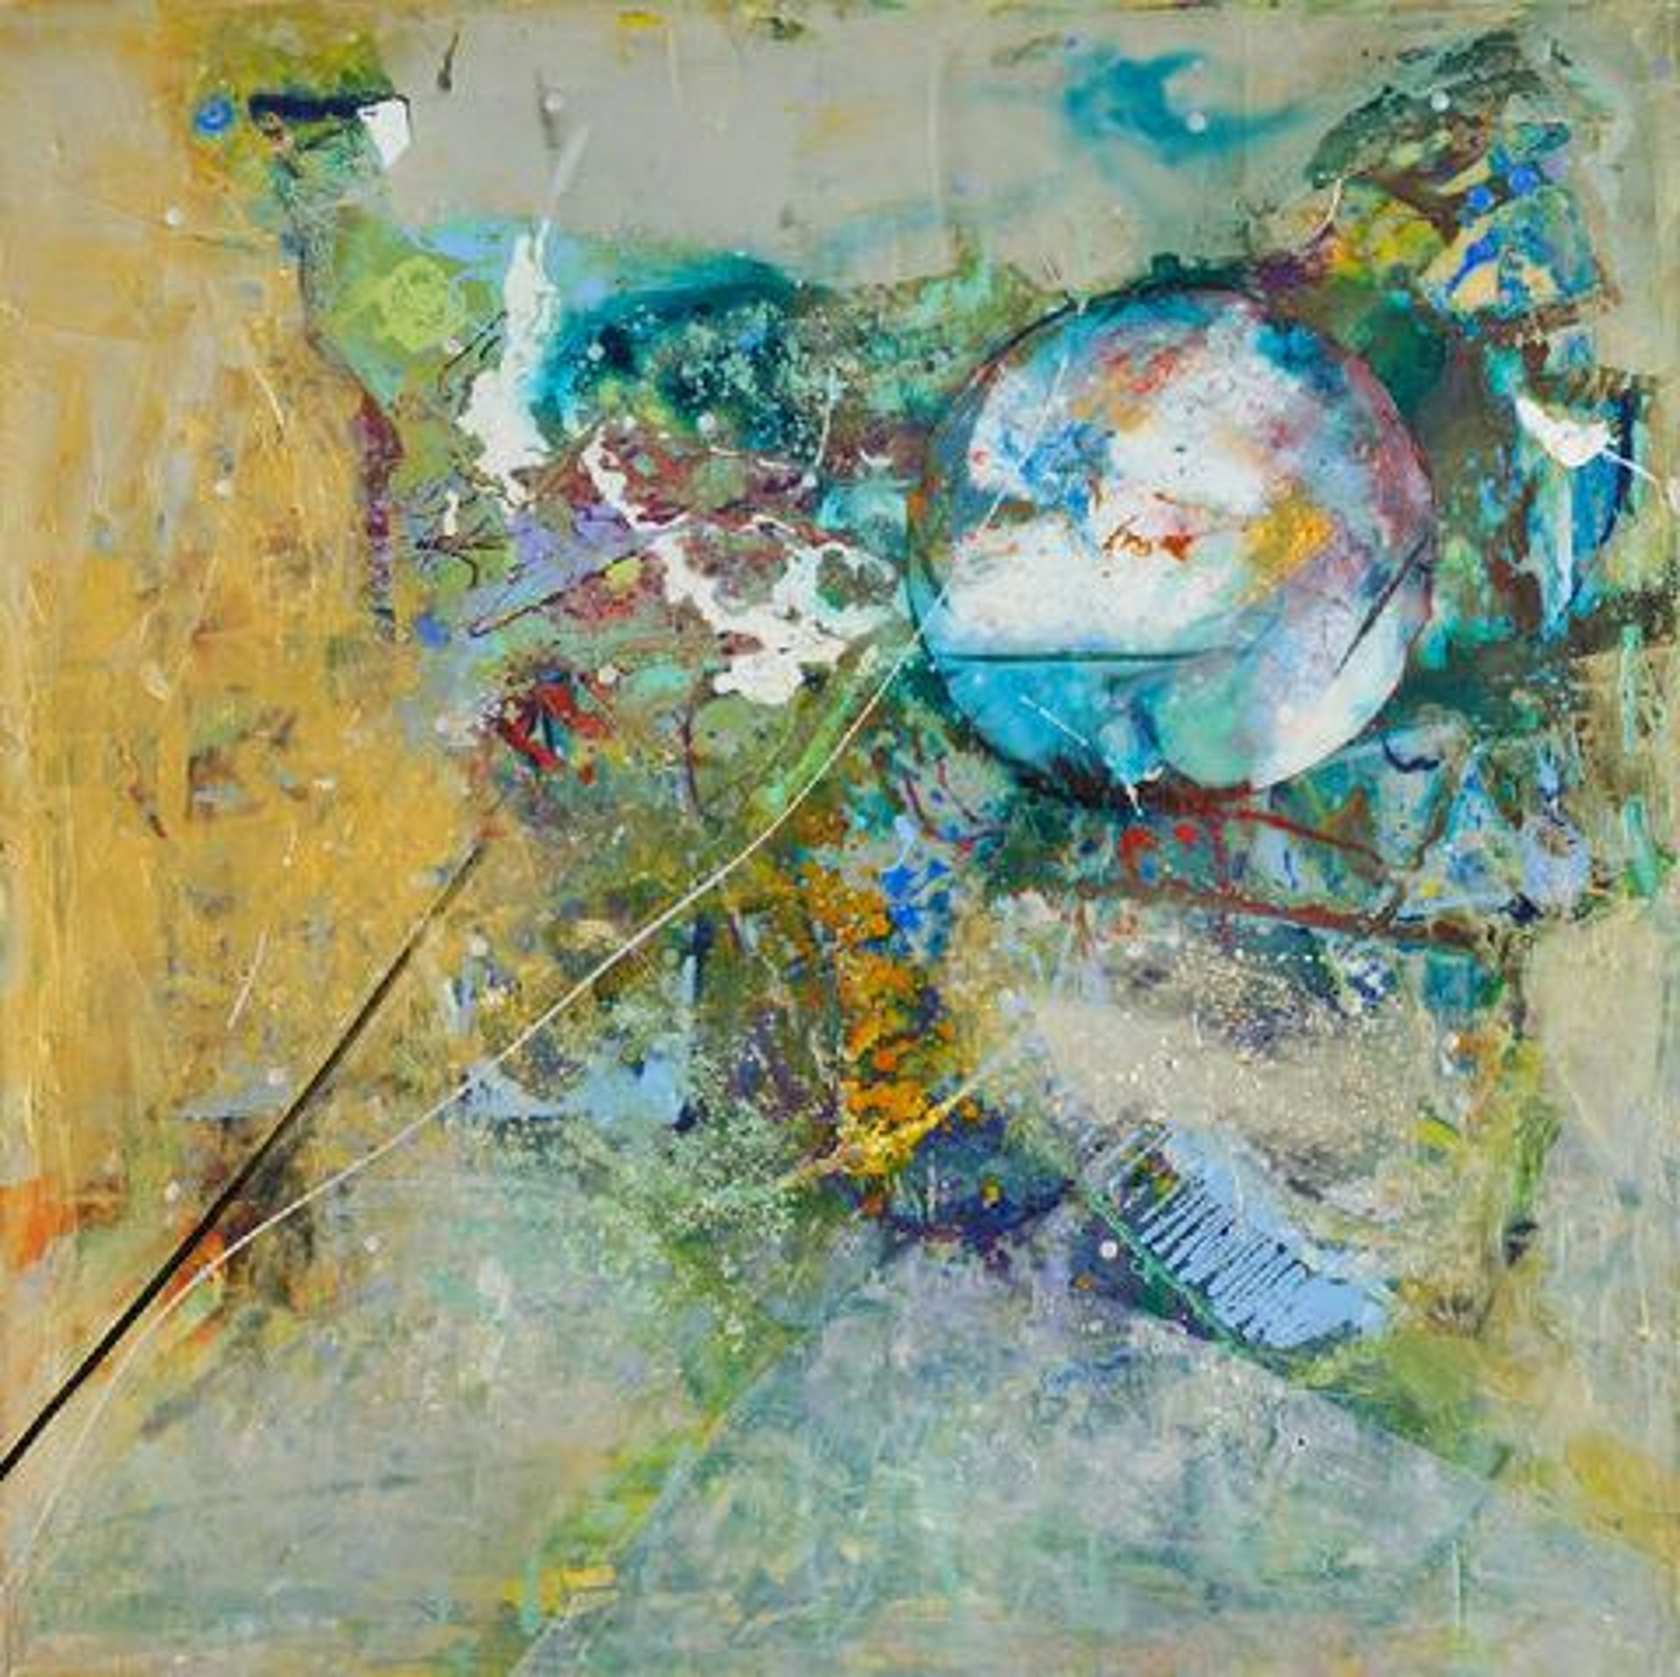 Zenith Gallery- Anne Marchand- Saying-2013- acrylic and mixed media on canvas- 36h x 36w- $5000.jpg